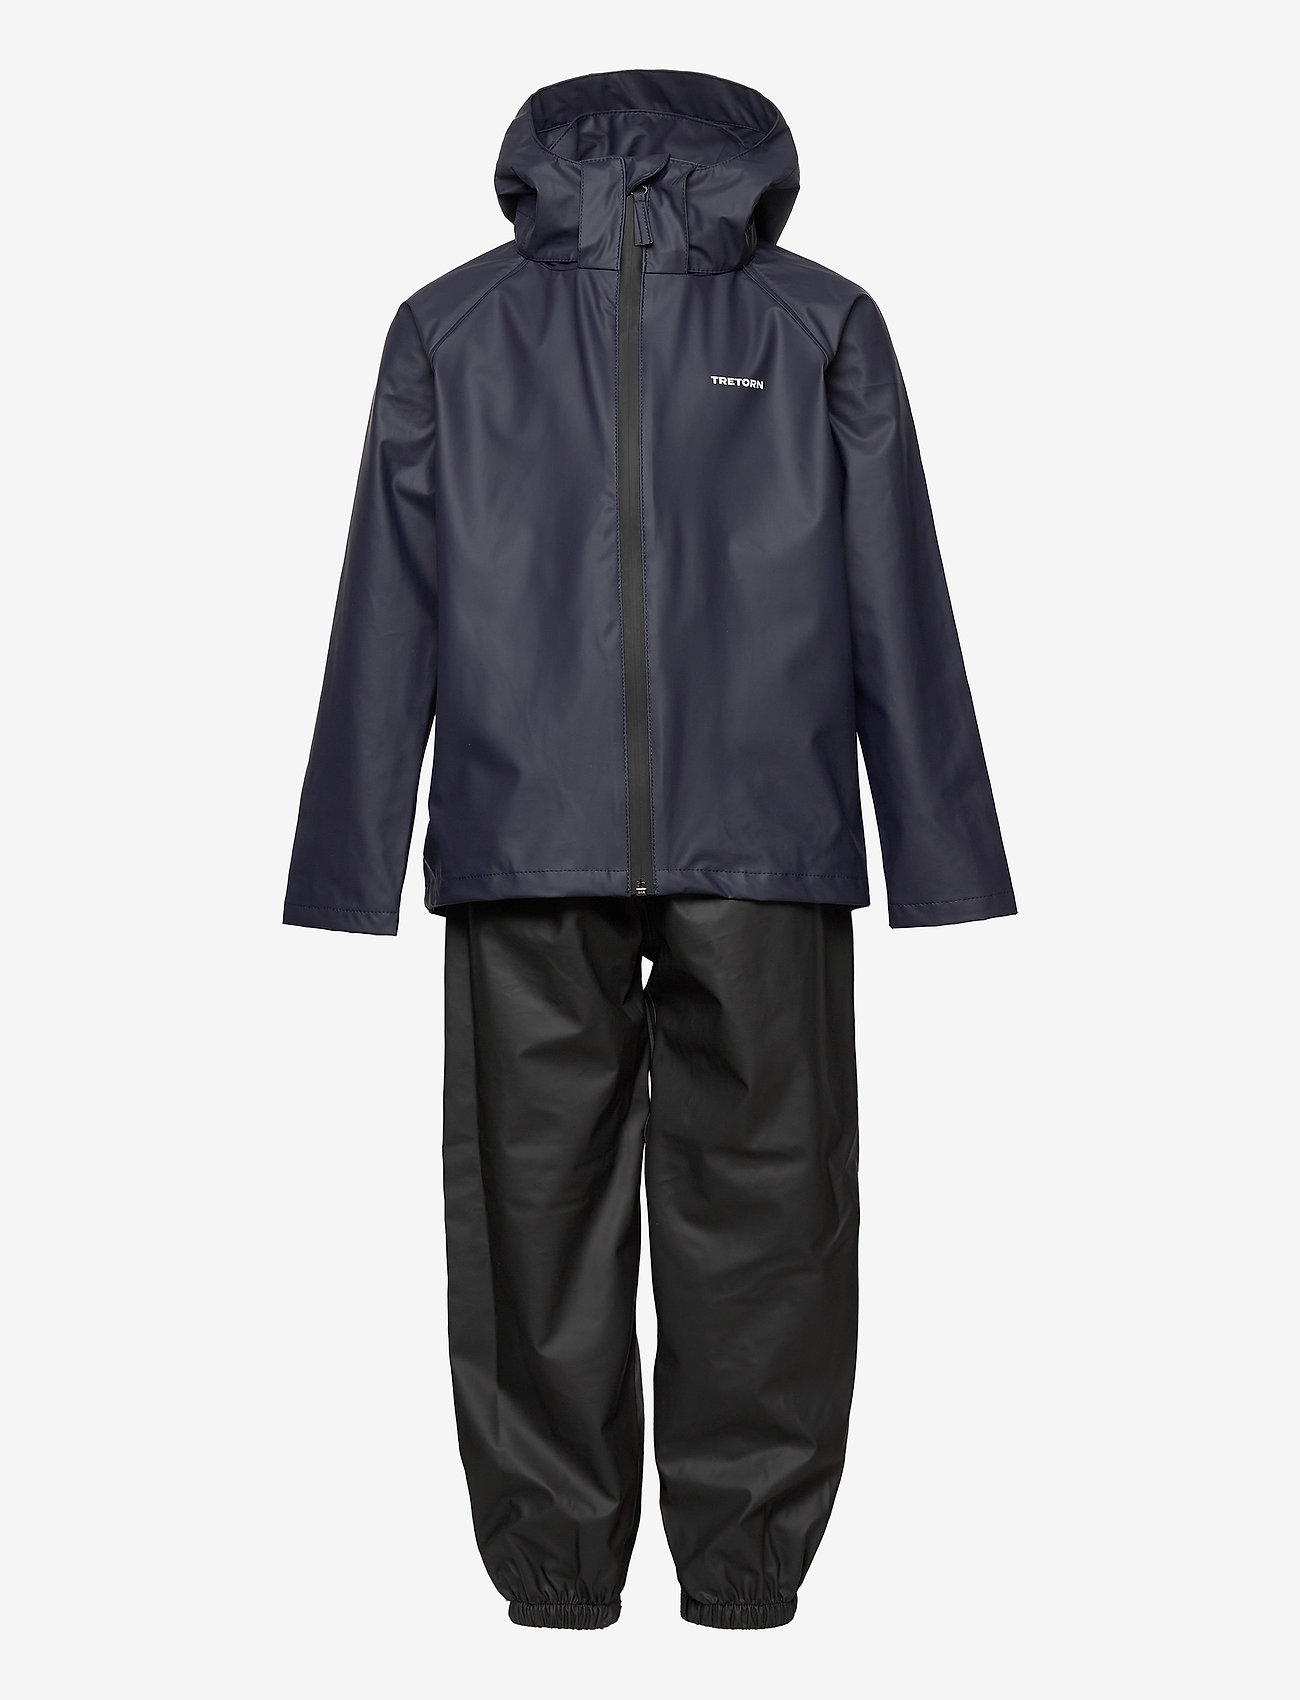 Tretorn - KIDS PACKABLE RAINSET - ensembles - 080/navy - 0